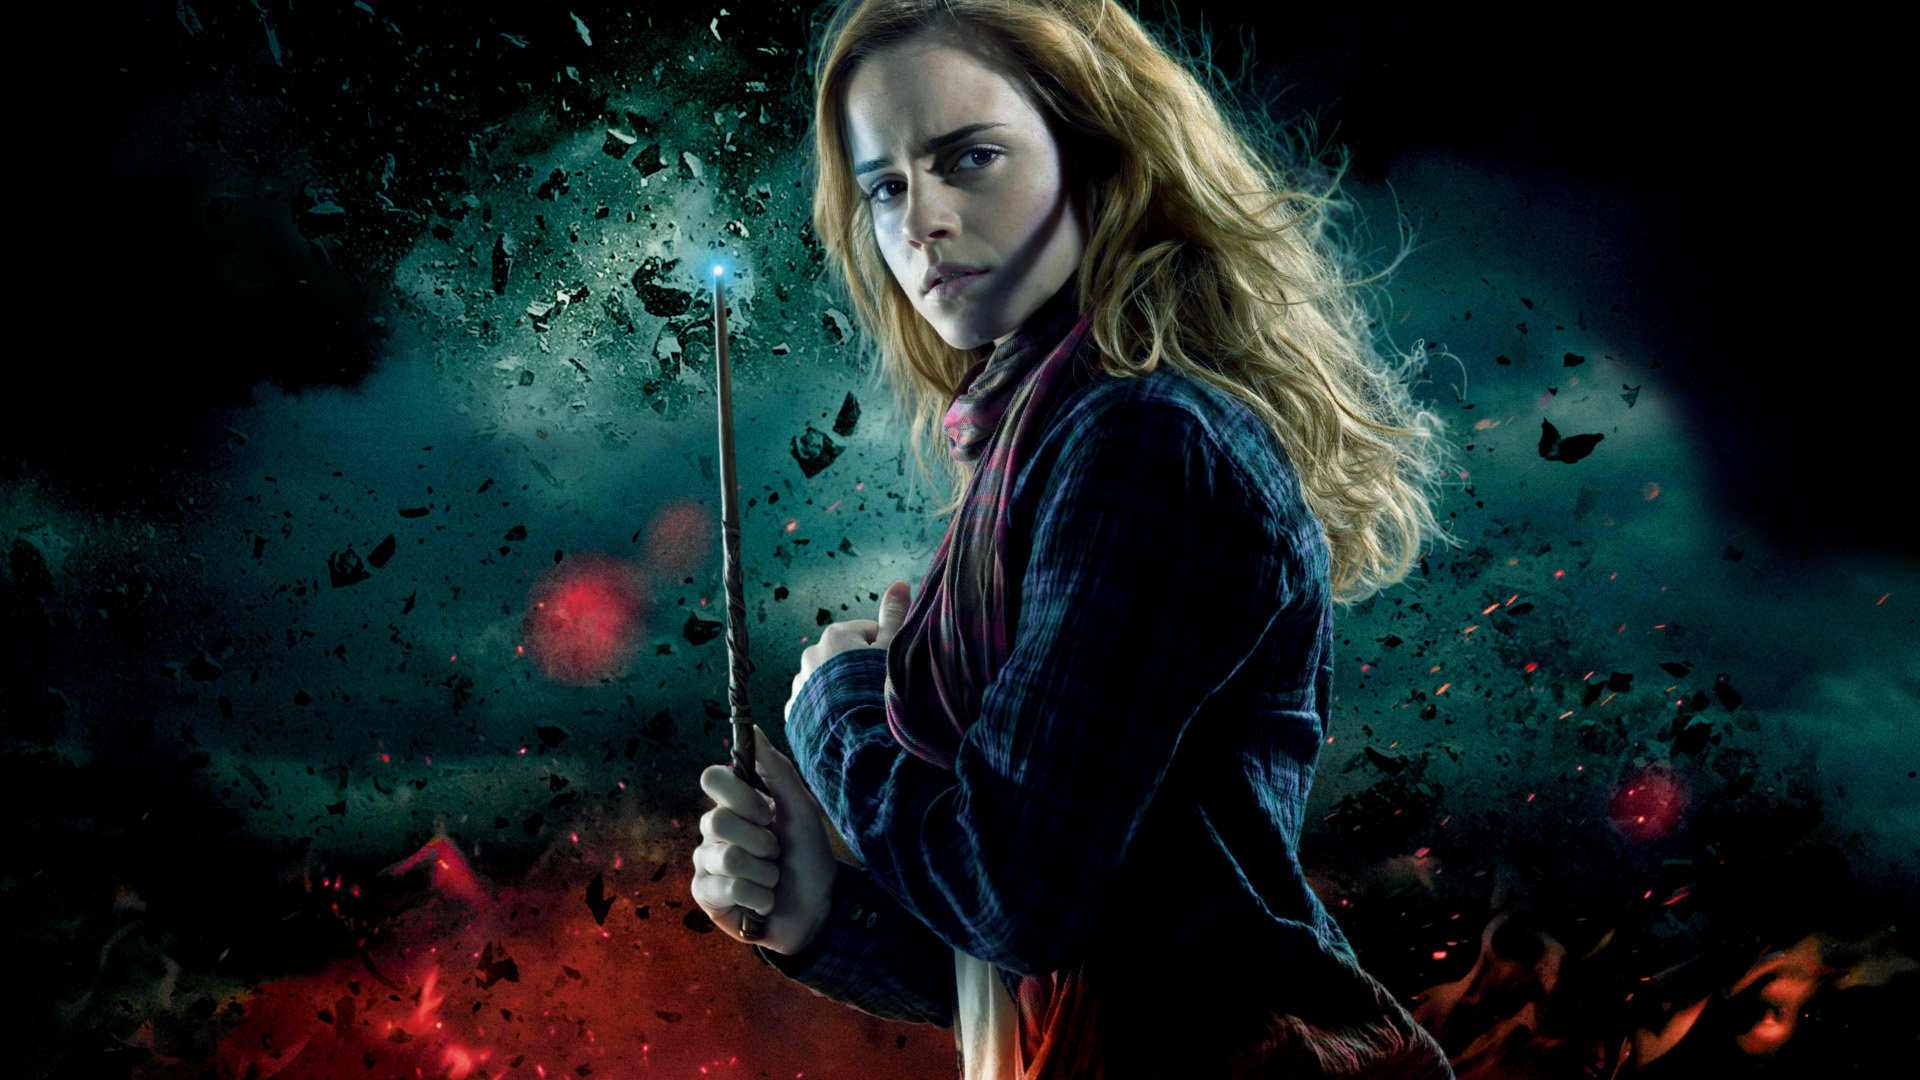 Free Harry Potter And The Deathly Hallows - Hd Wallpapers Harry Potter - HD Wallpaper